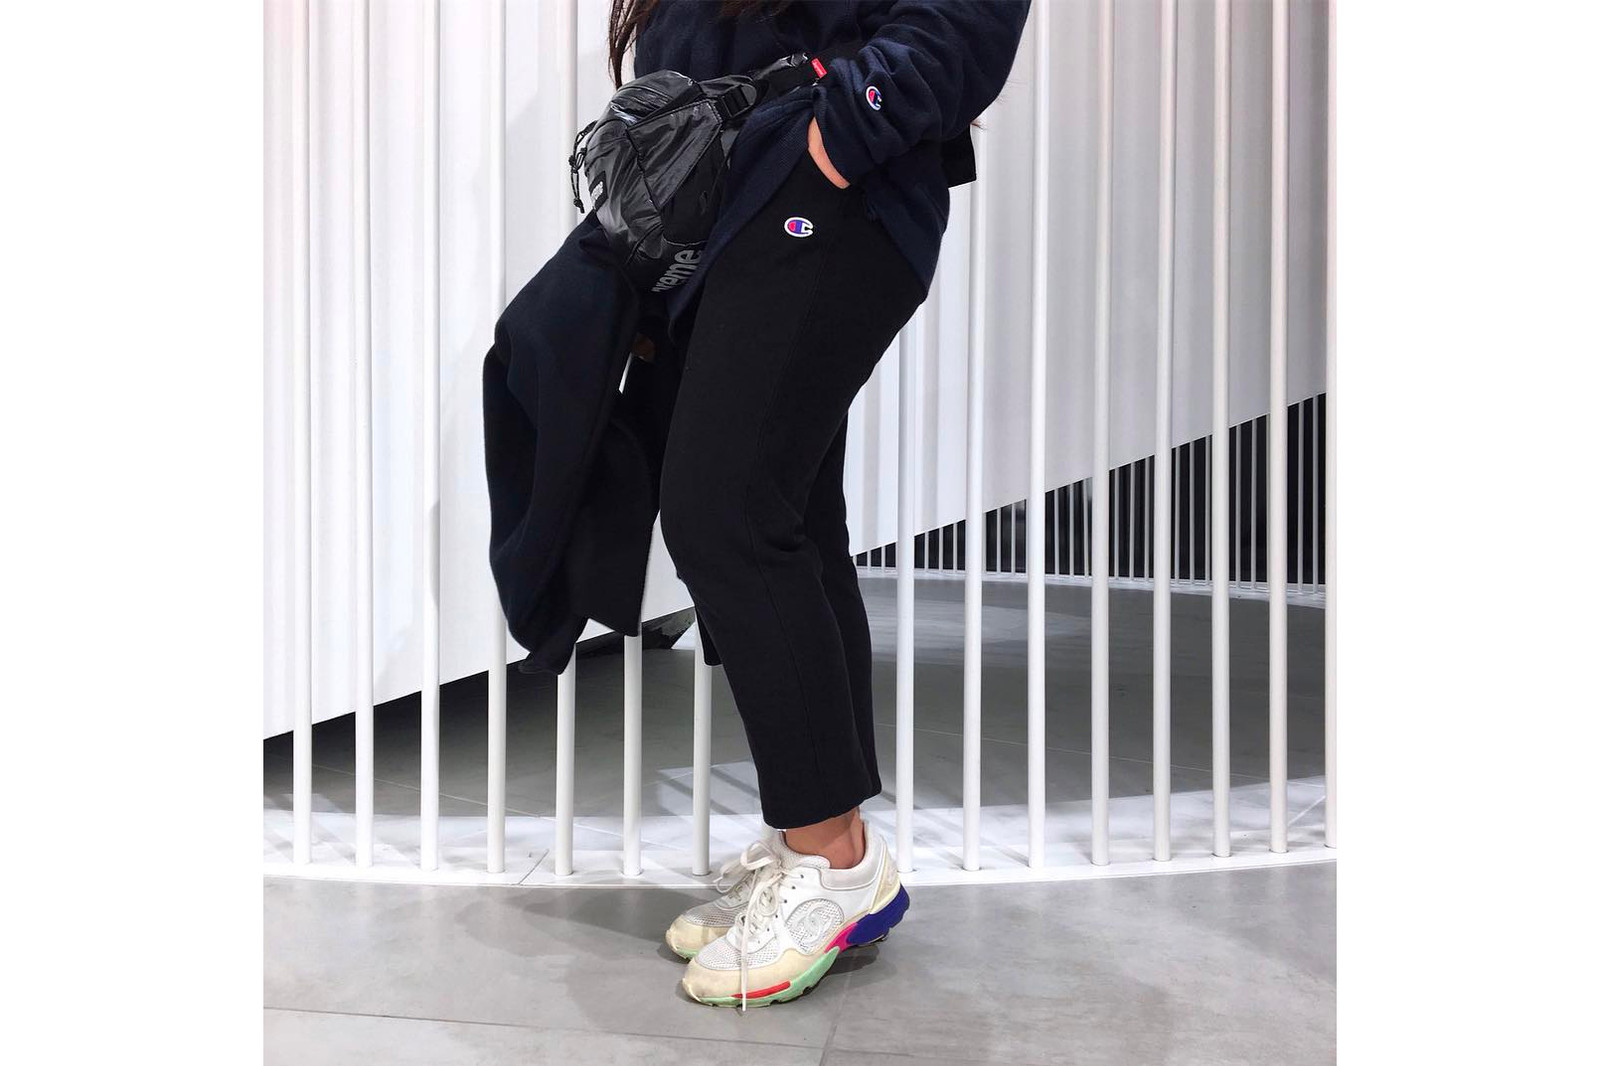 Vintage Chanel Sneakers Where to Buy Emily Oberg Instagram eBay Luxury